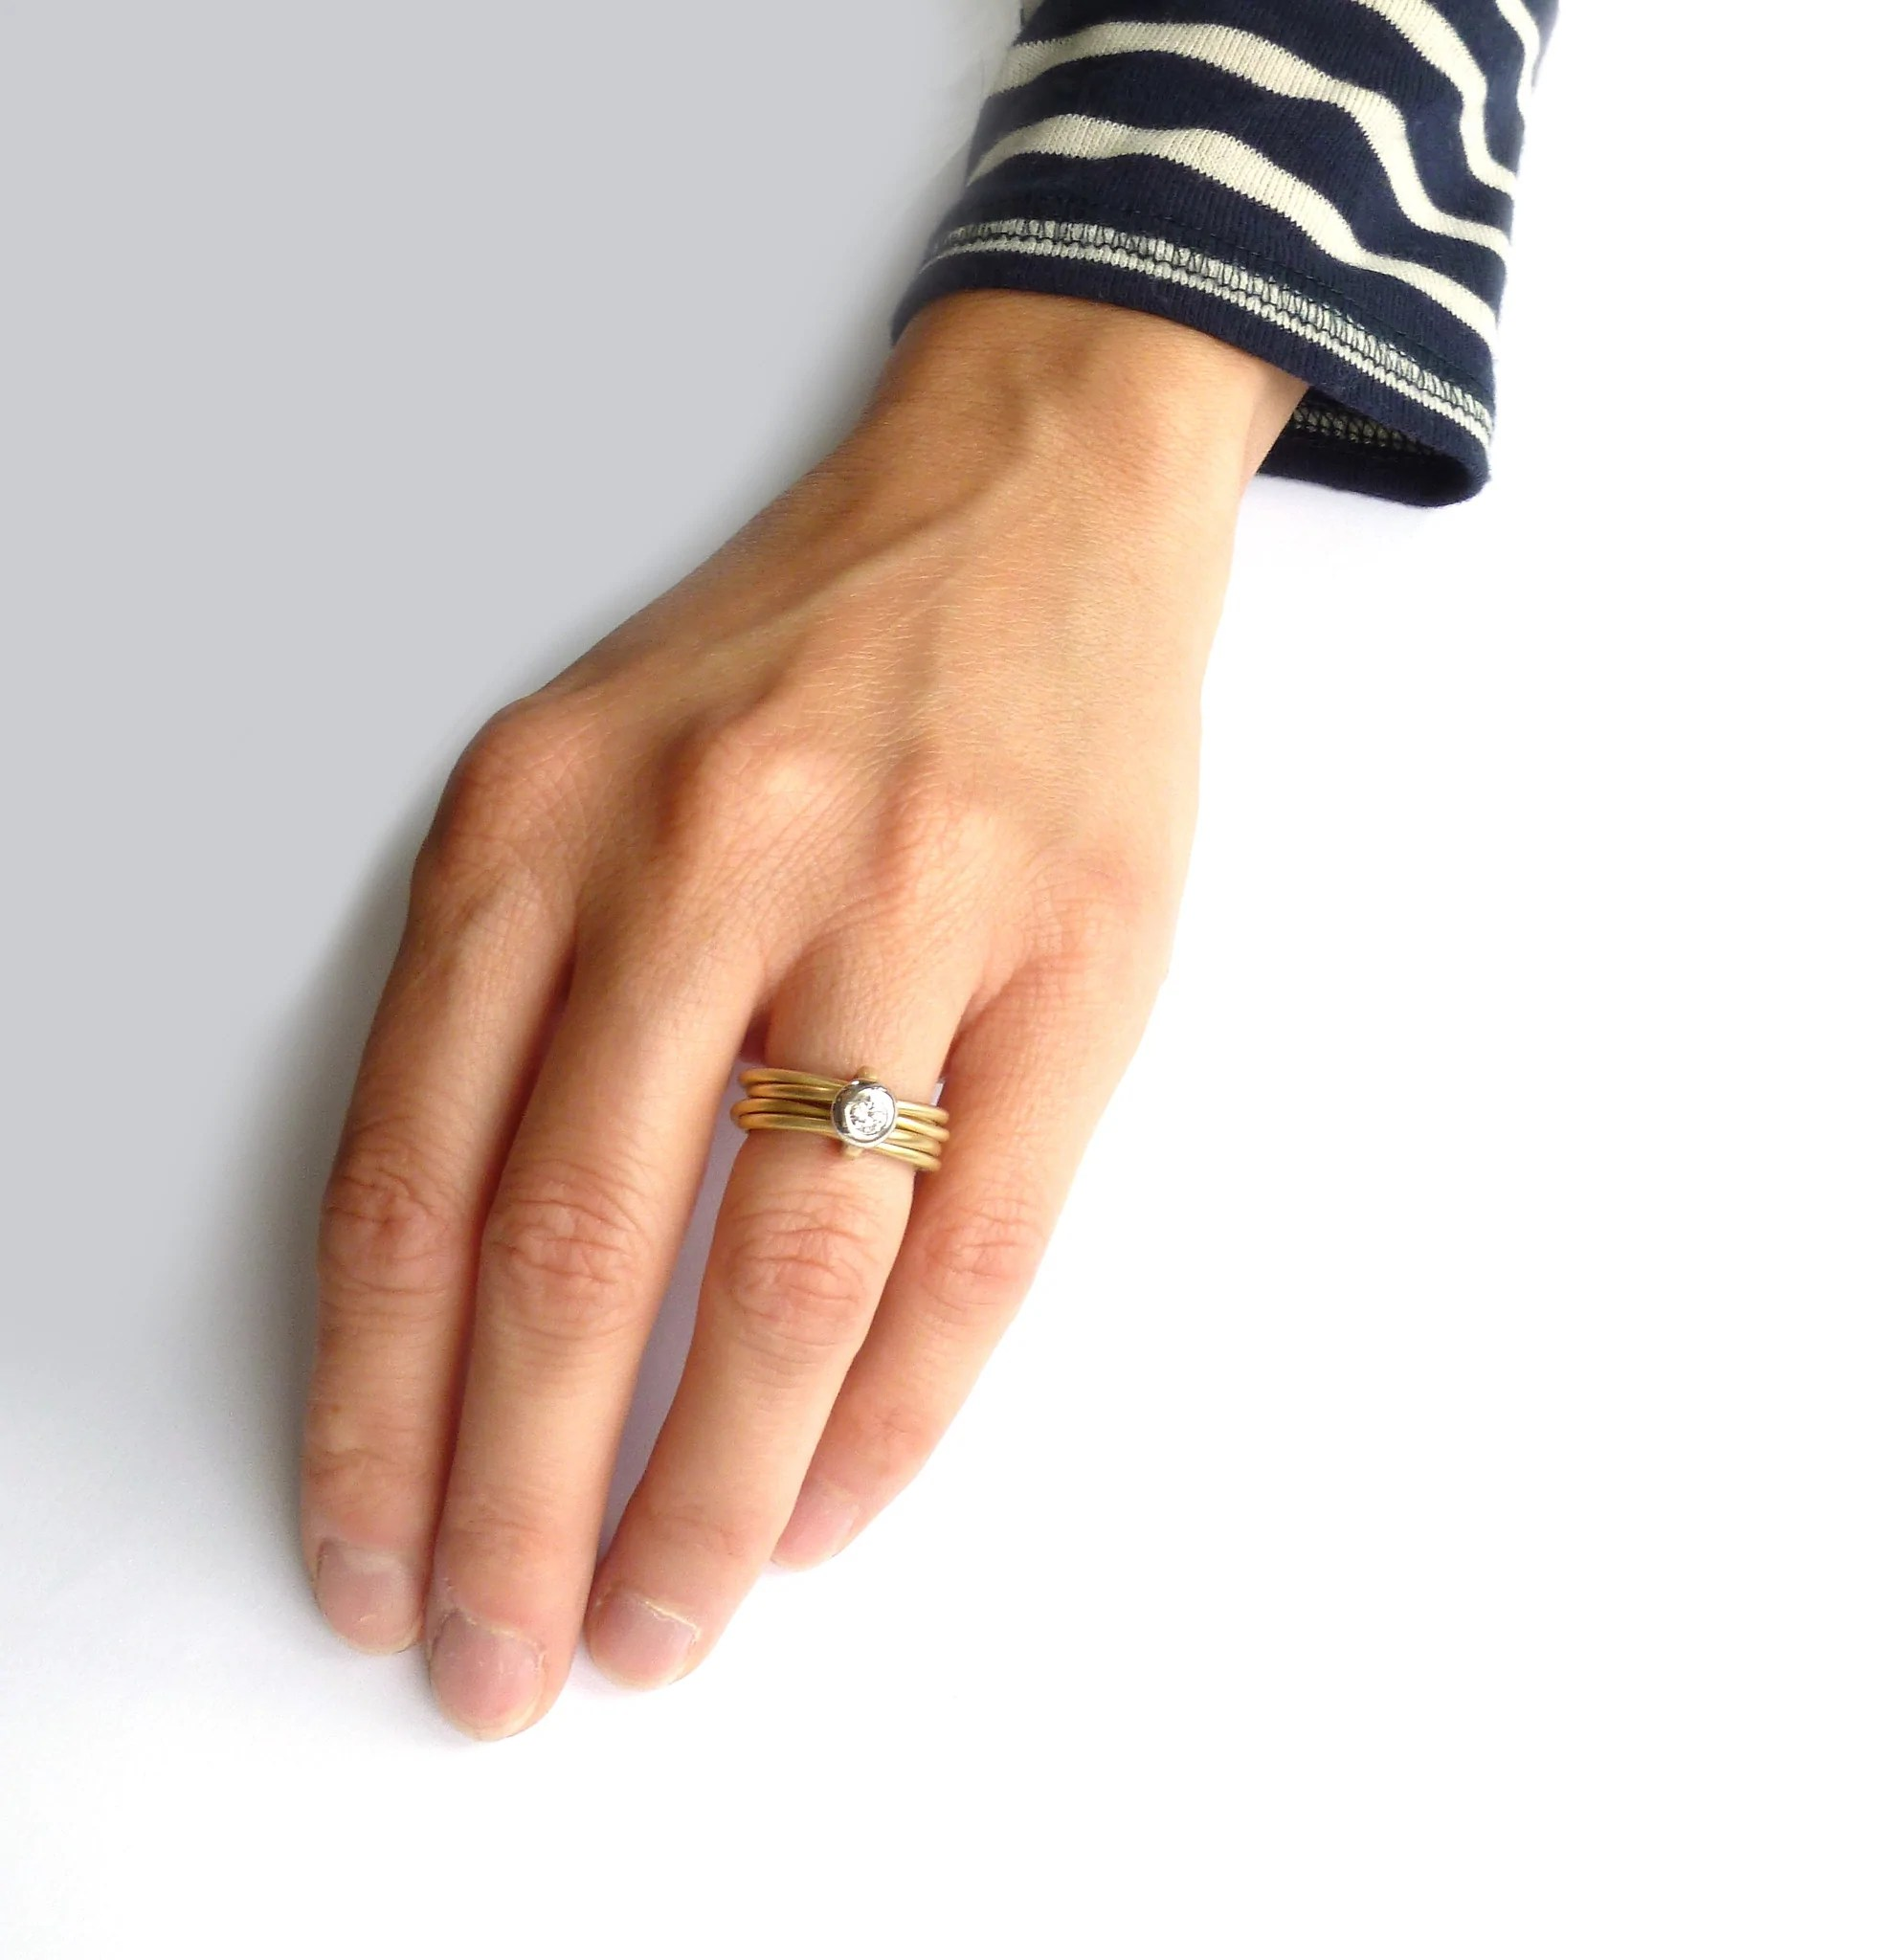 18k gold and platinum 6 band ring rd15plat multi band wedding ring Contemporary bespoke and modern yellow gold multi band engagement wedding ring 0 25pt round